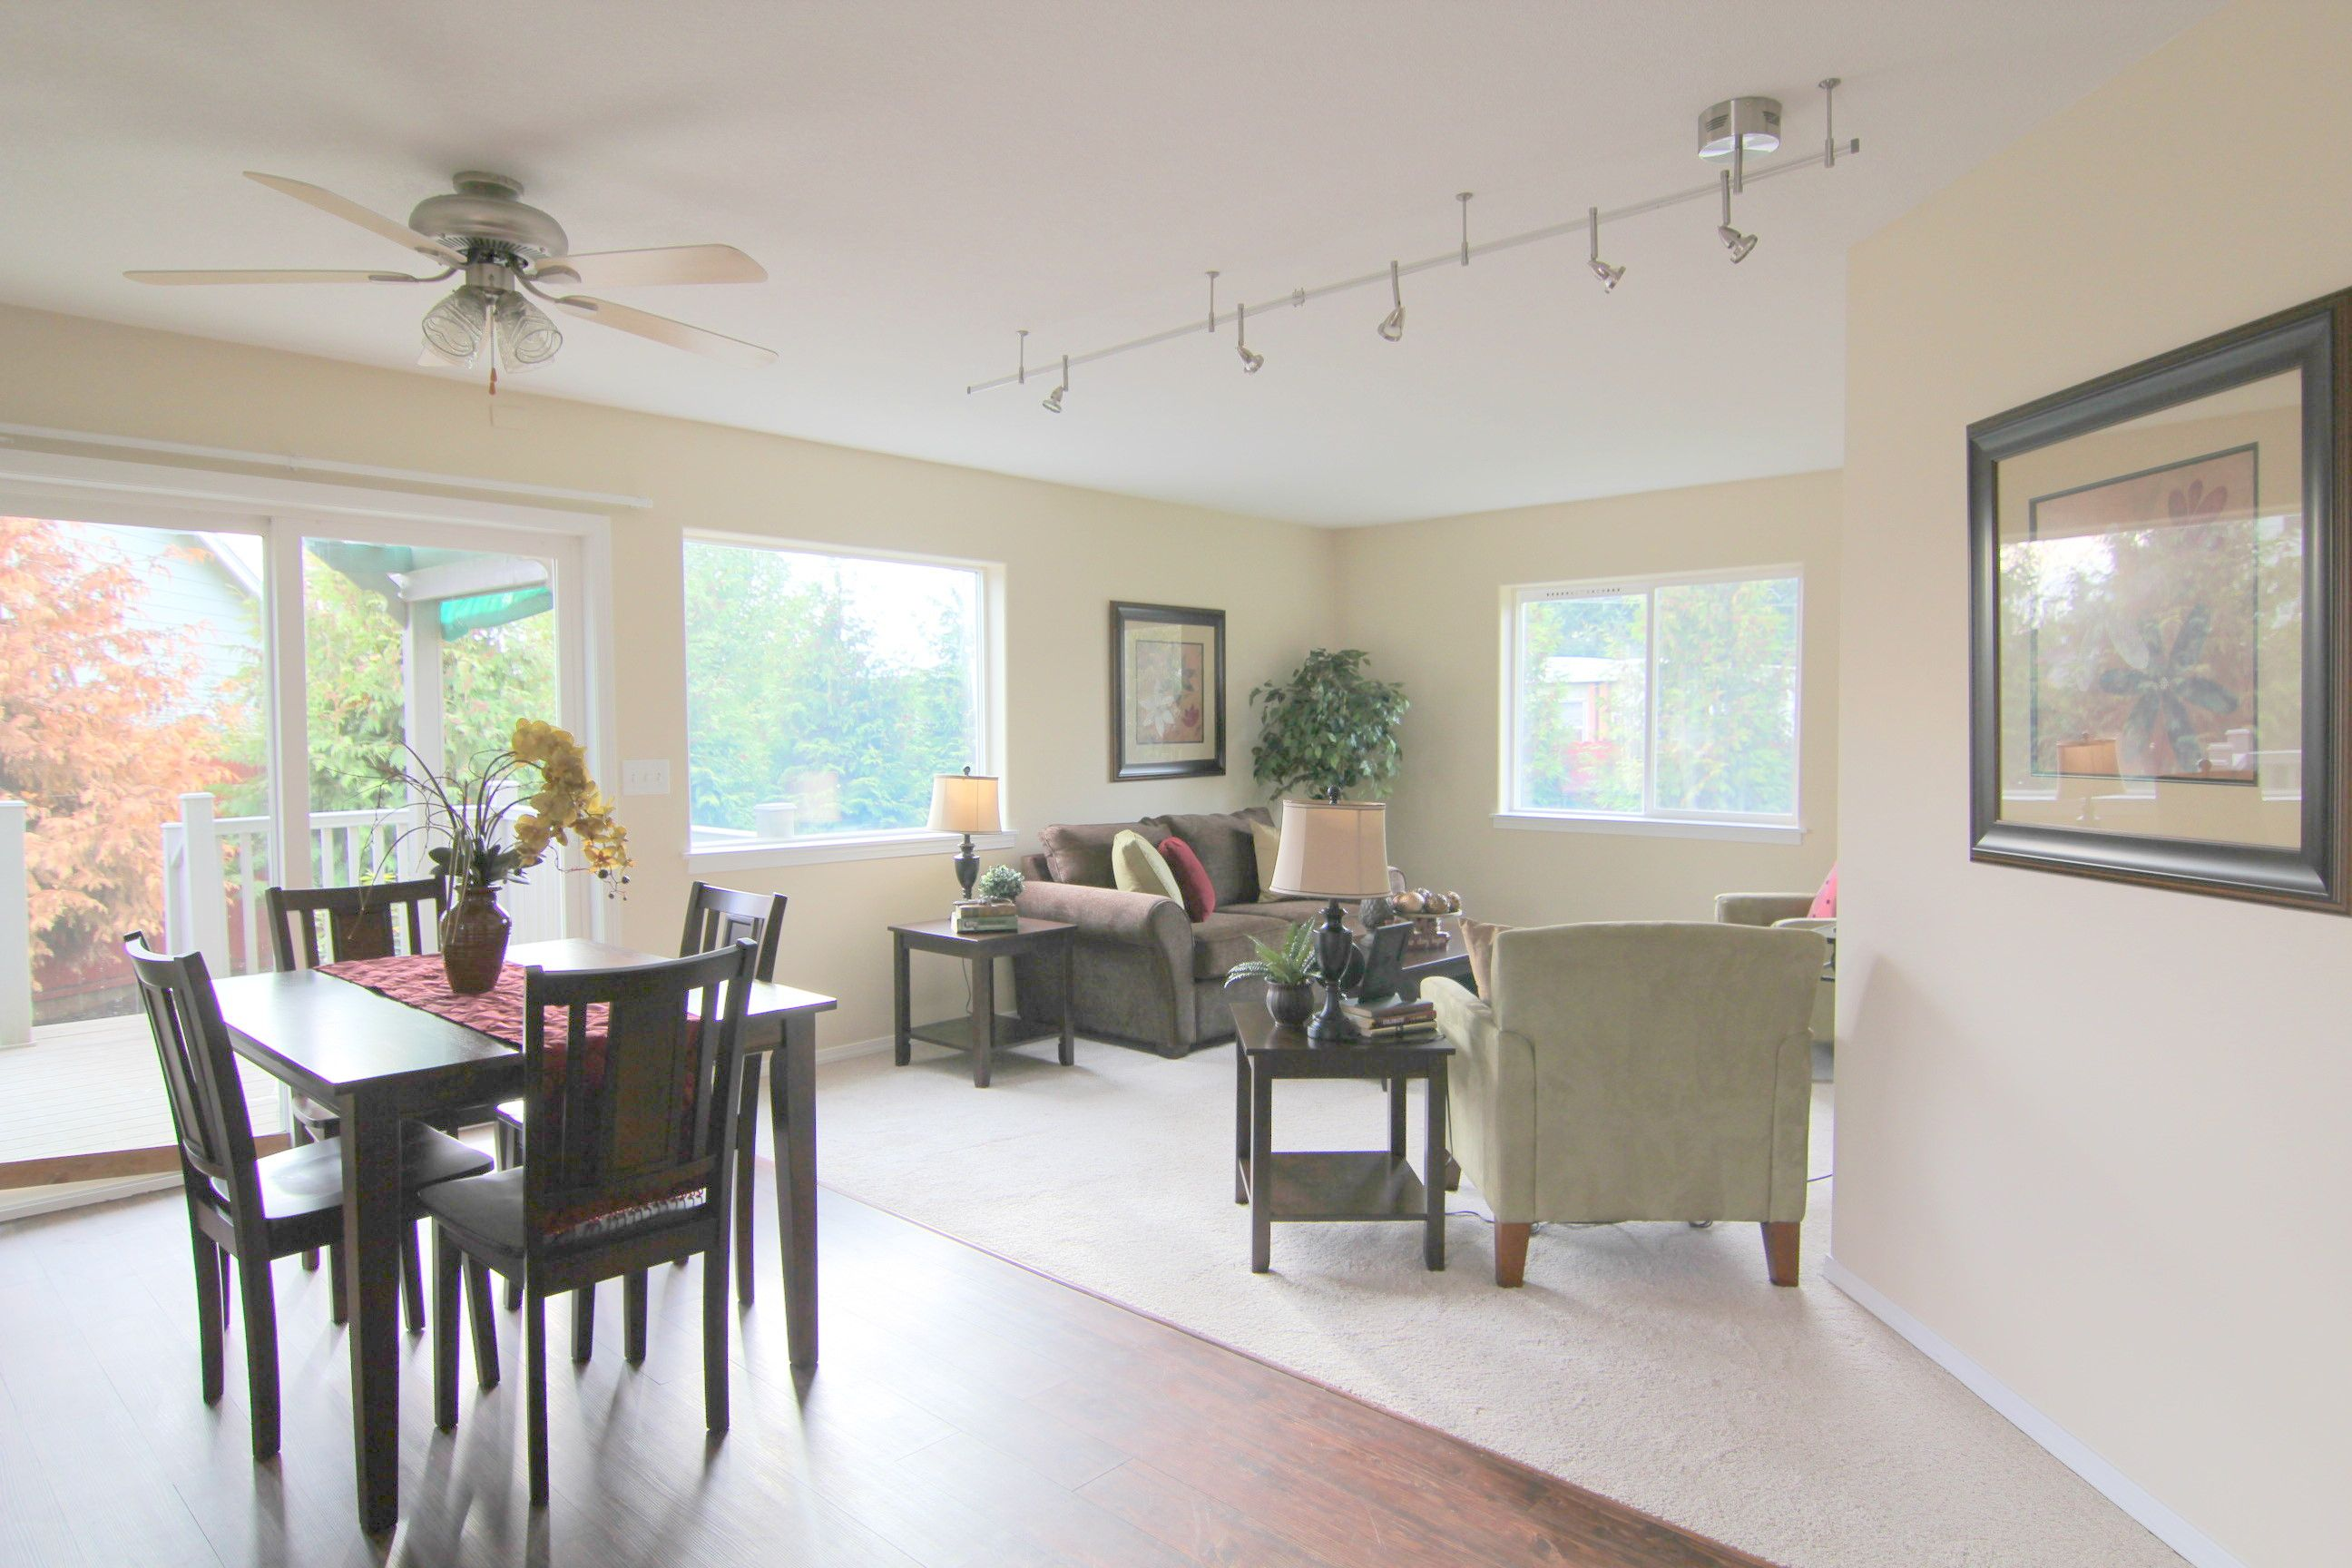 Sherwin williams maison blanche paint living room professionally staged by creative concepts - Paint colors for exterior walls concept ...